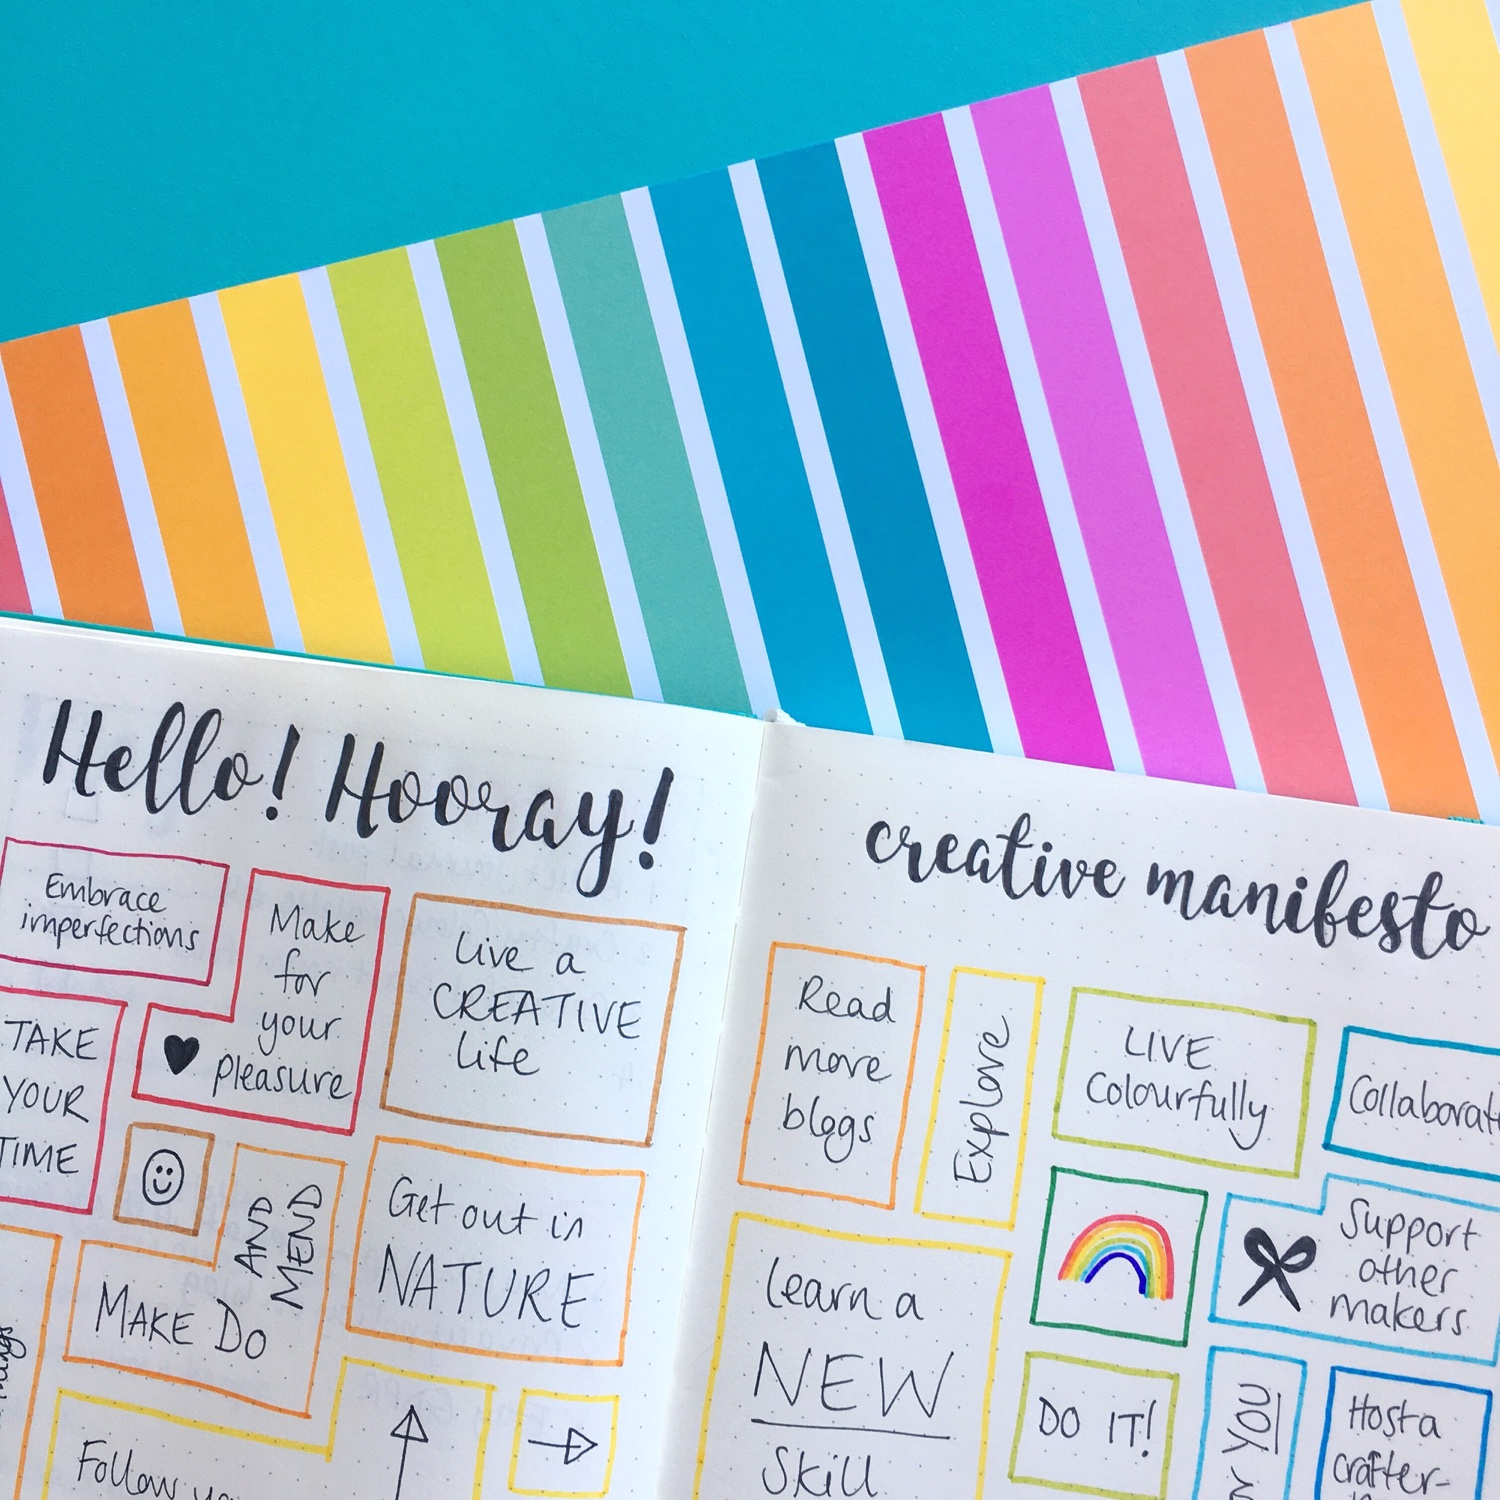 Hello! Hooray! Creative manifesto